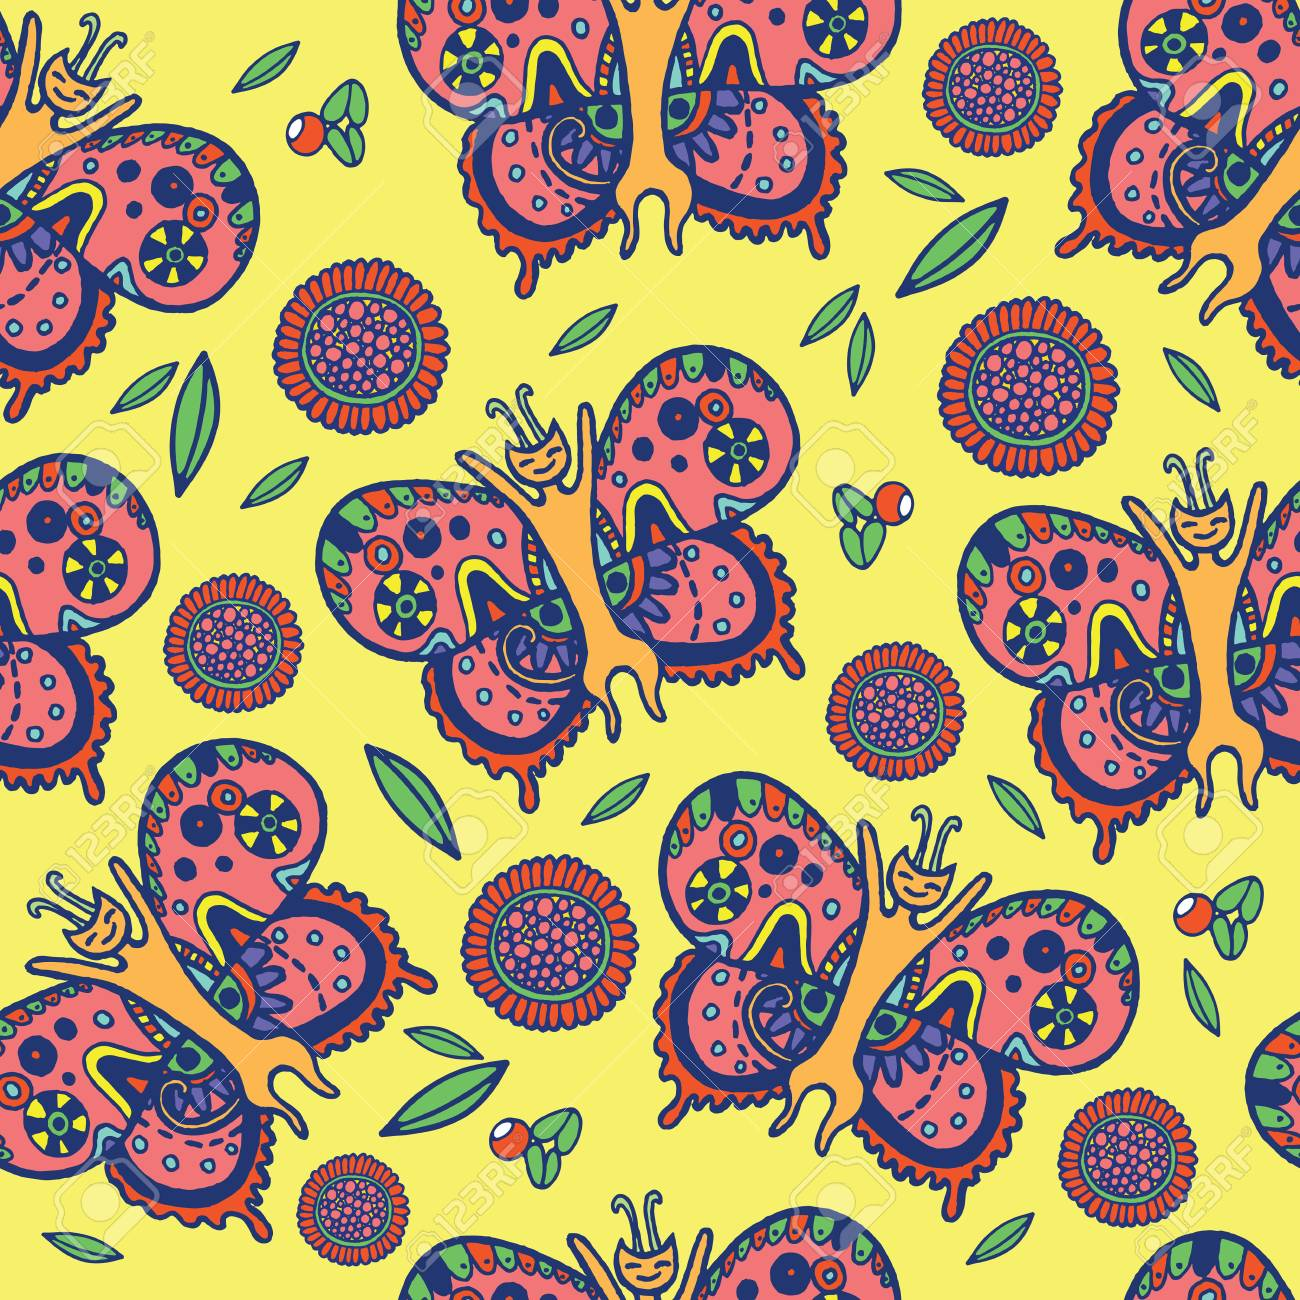 Butterfly Cat Fly In Leaf Flower And Berry On Yellow Background Summer Psychedelic Funny